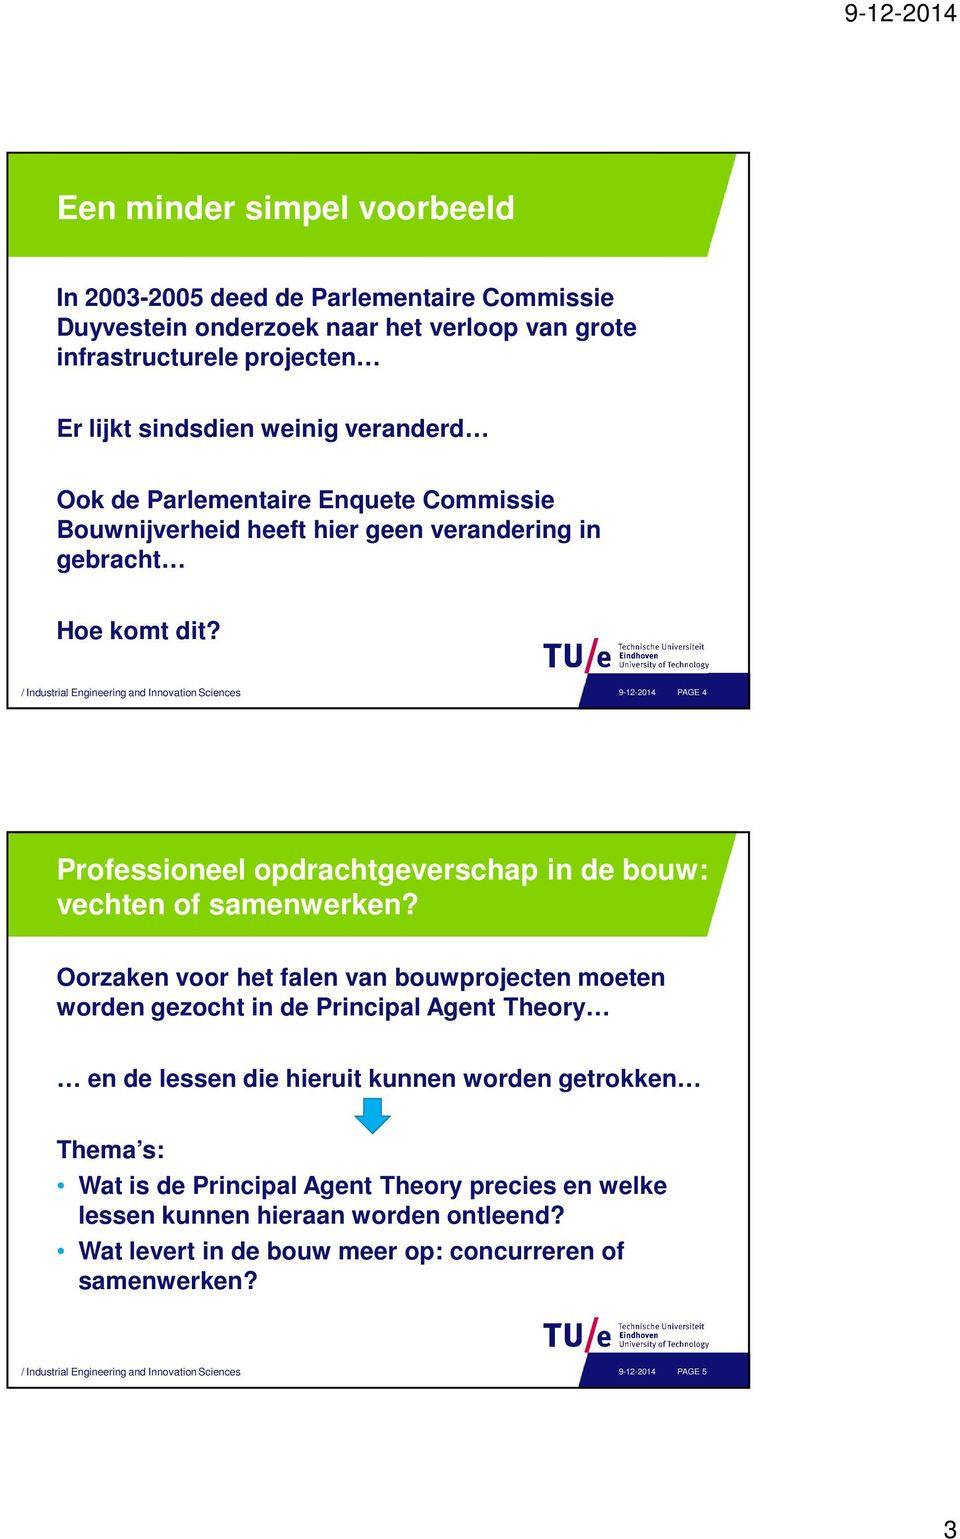 / Industrial Engineering and Innovation Sciences 9-12-2014 PAGE 4 Professioneel opdrachtgeverschap in de bouw: vechten of samenwerken?